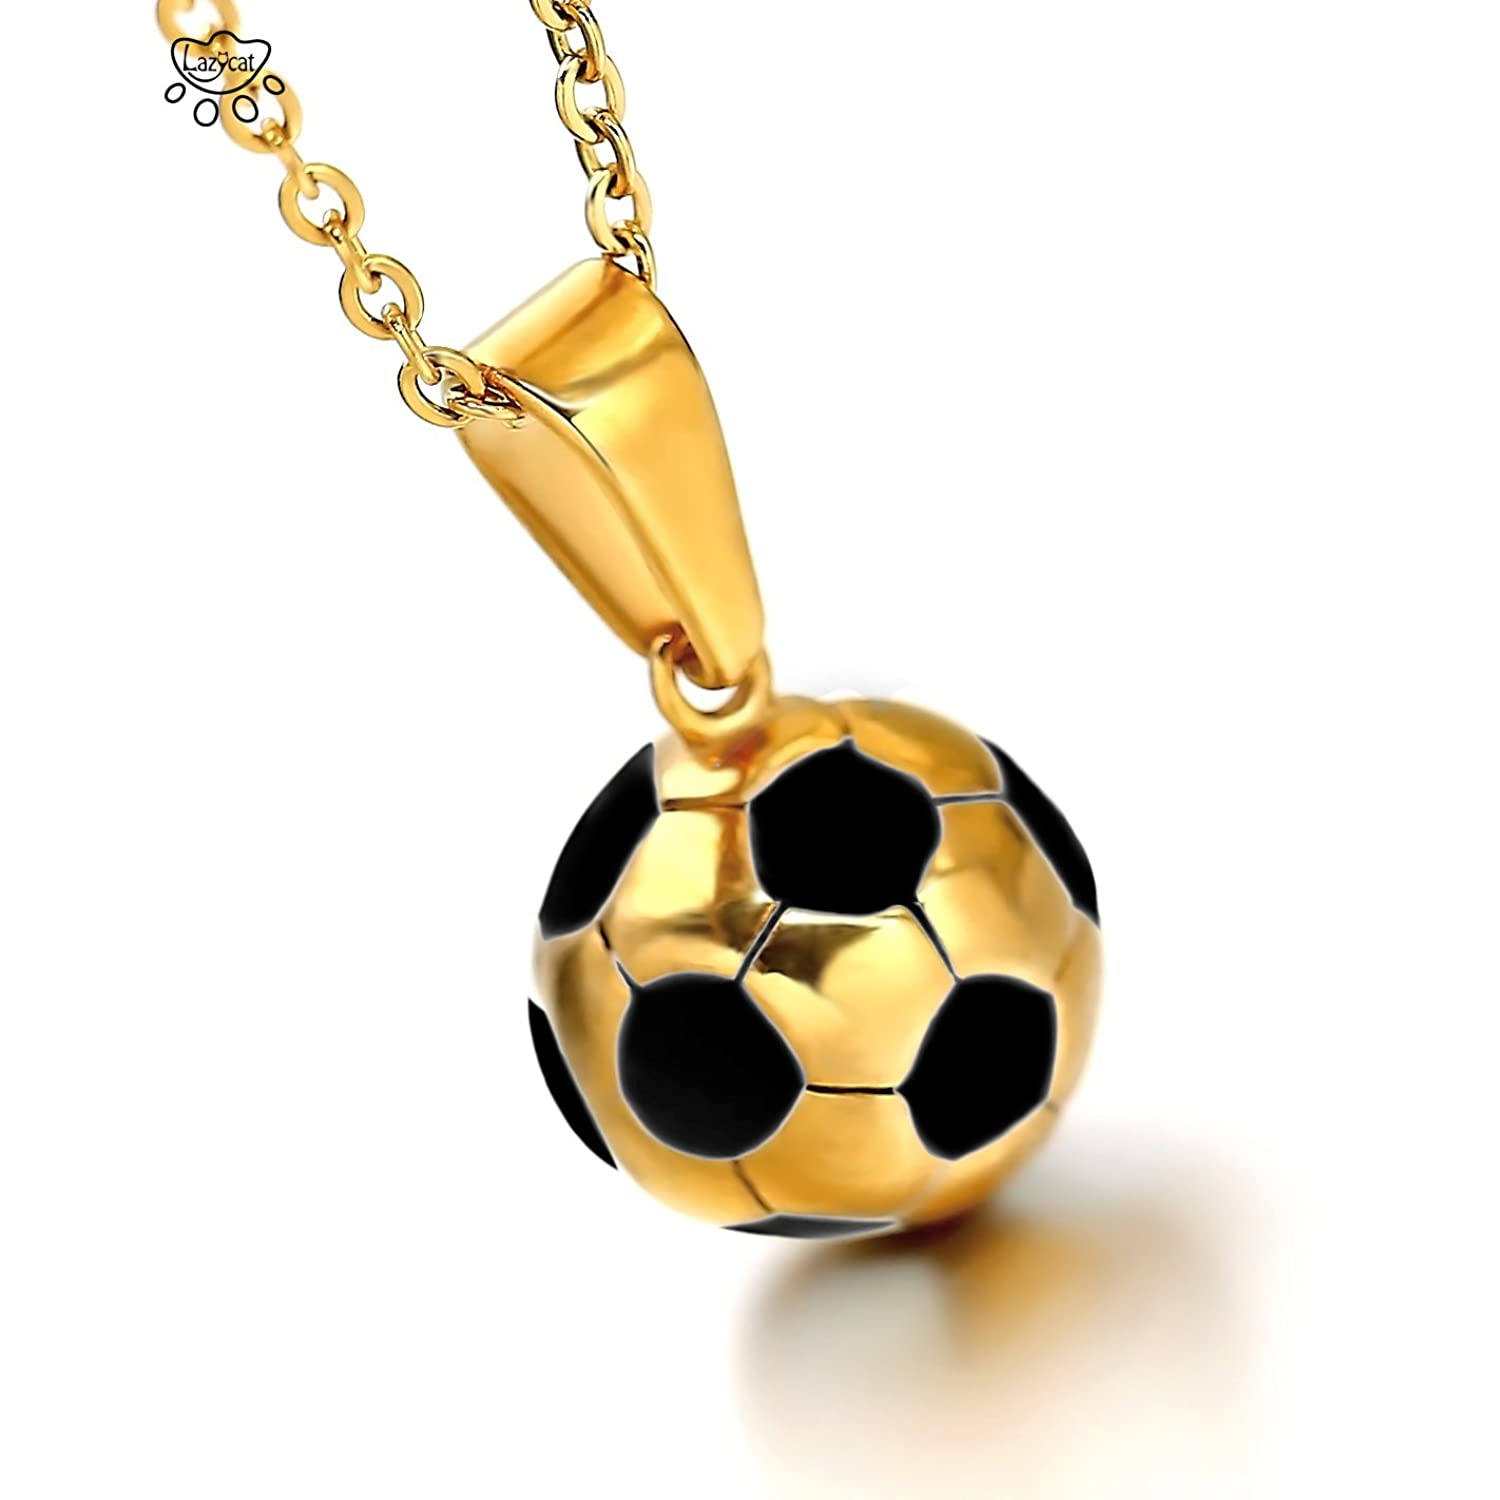 luxury pendant bch cuban mini plated amazon hop set com chain out miami s dp gold iced football hip g men